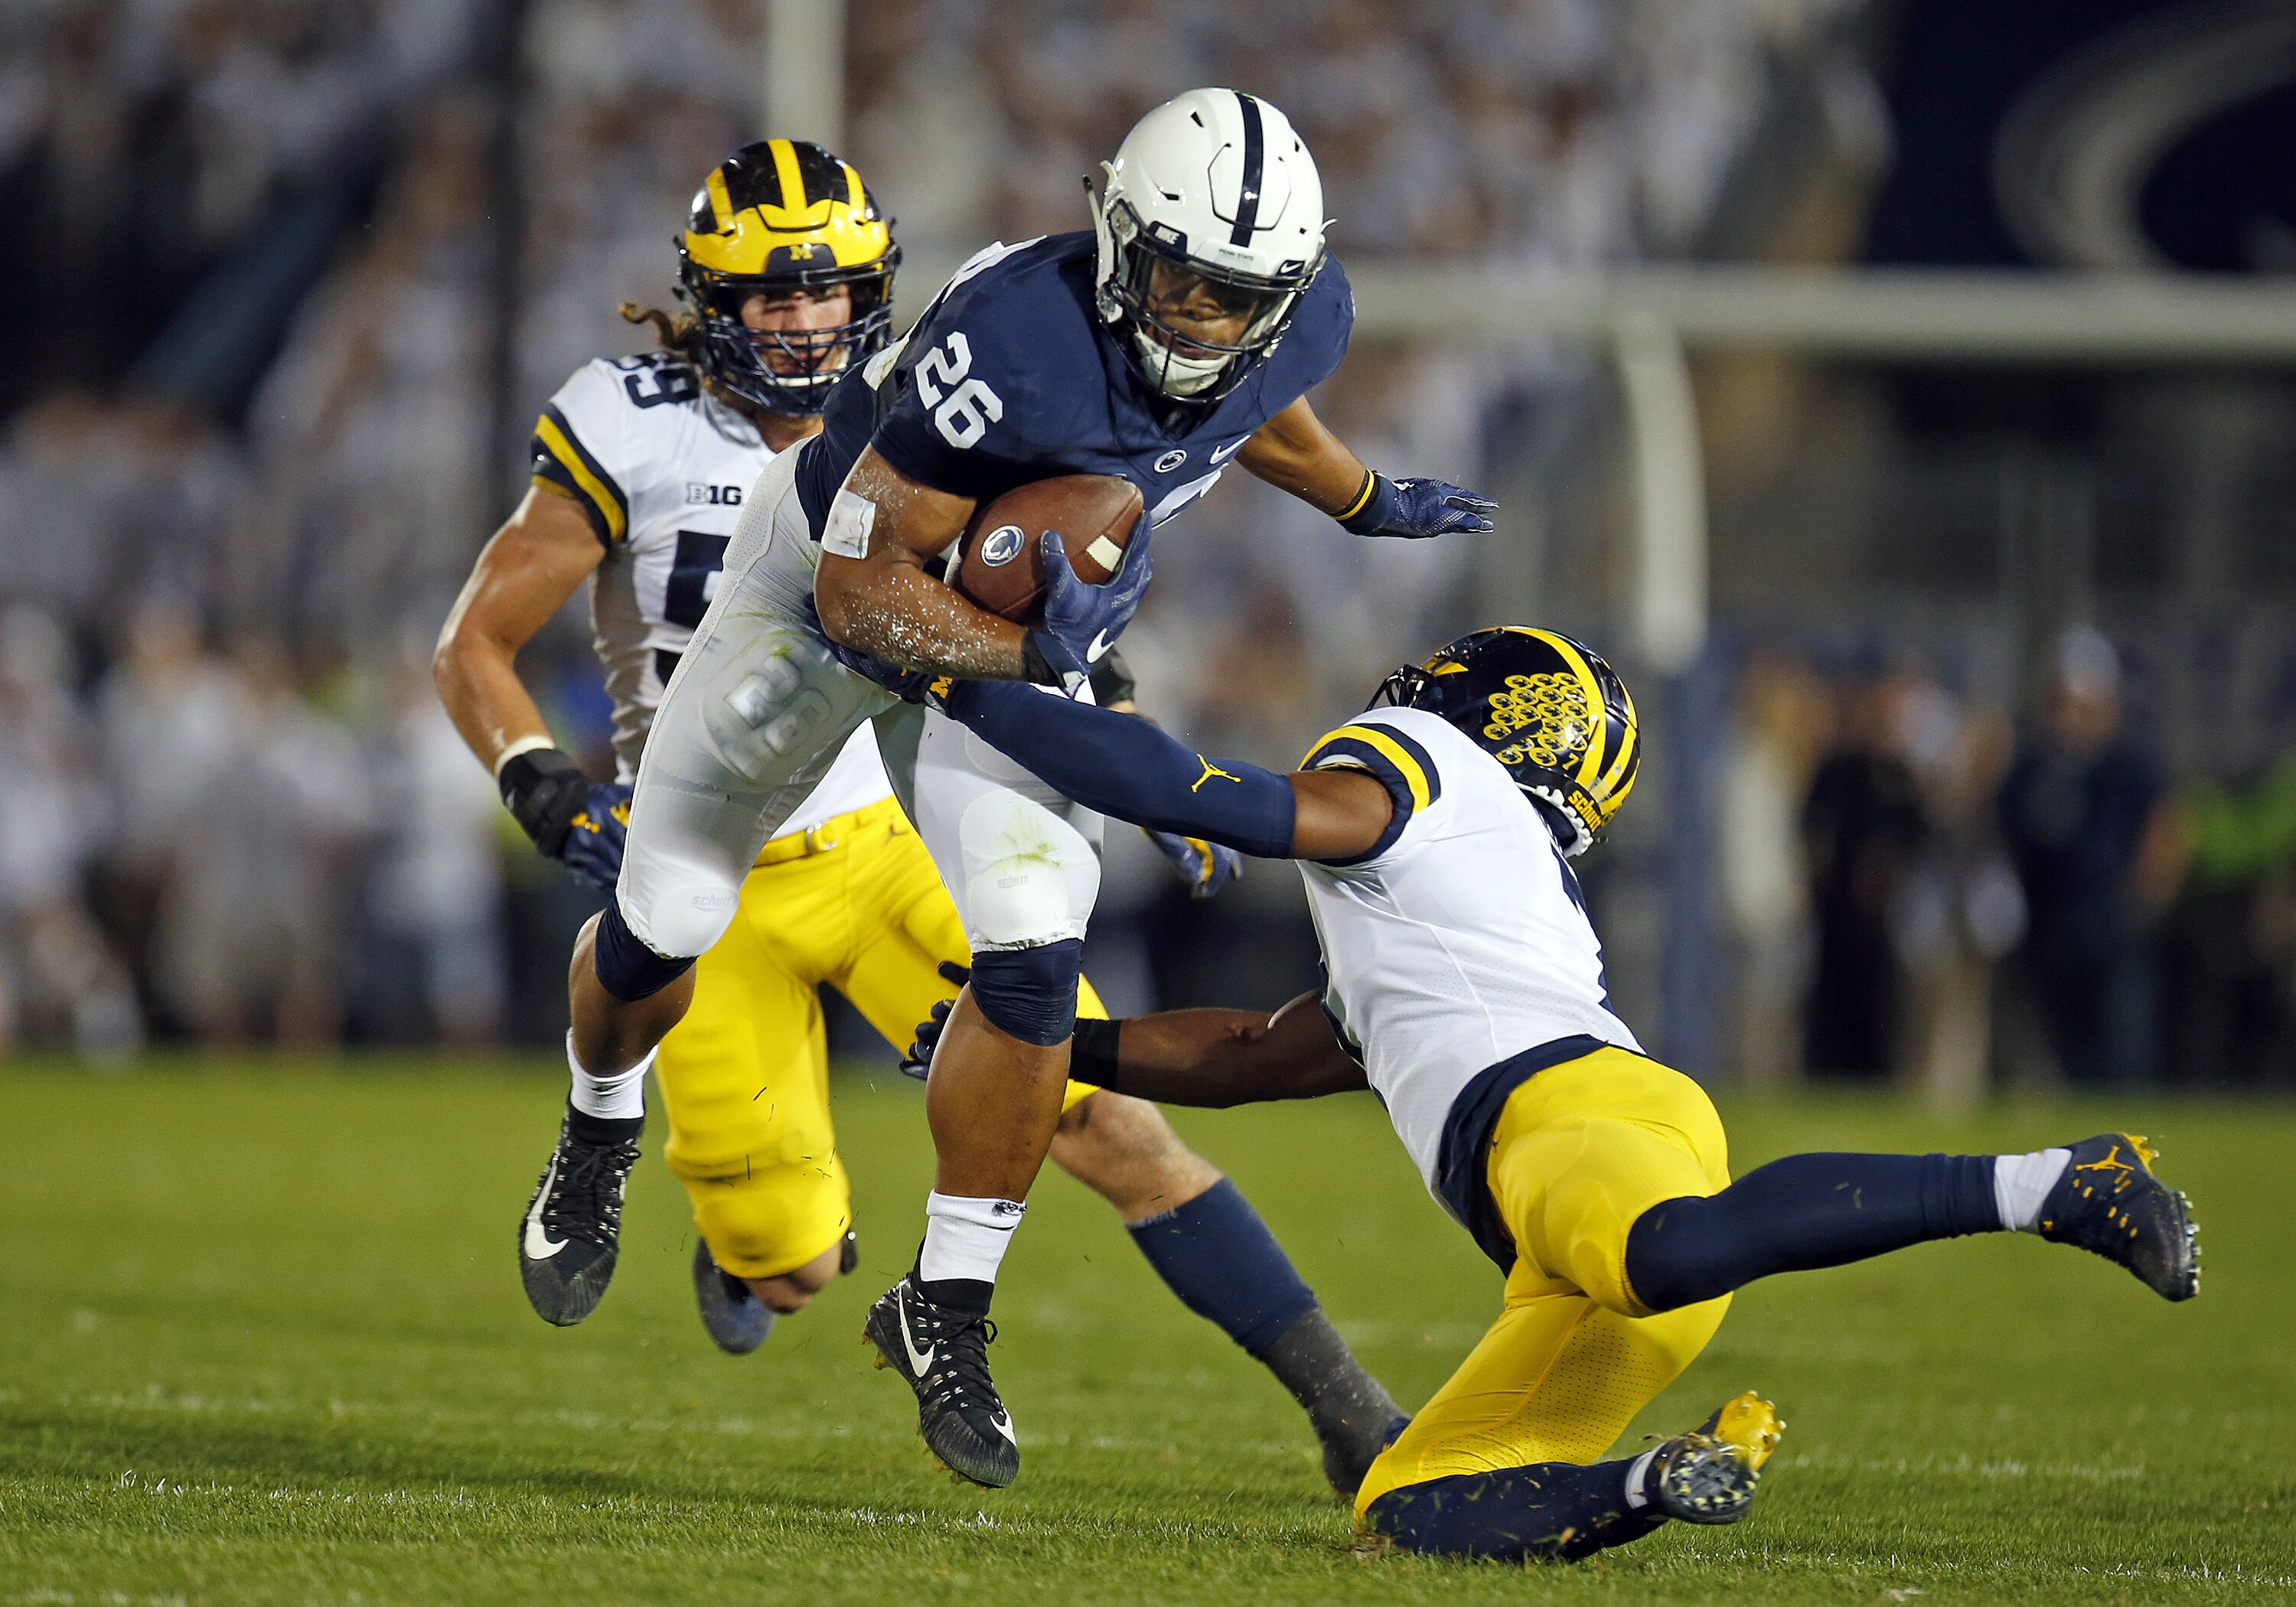 864815752-michigan-v-penn-state.jpg